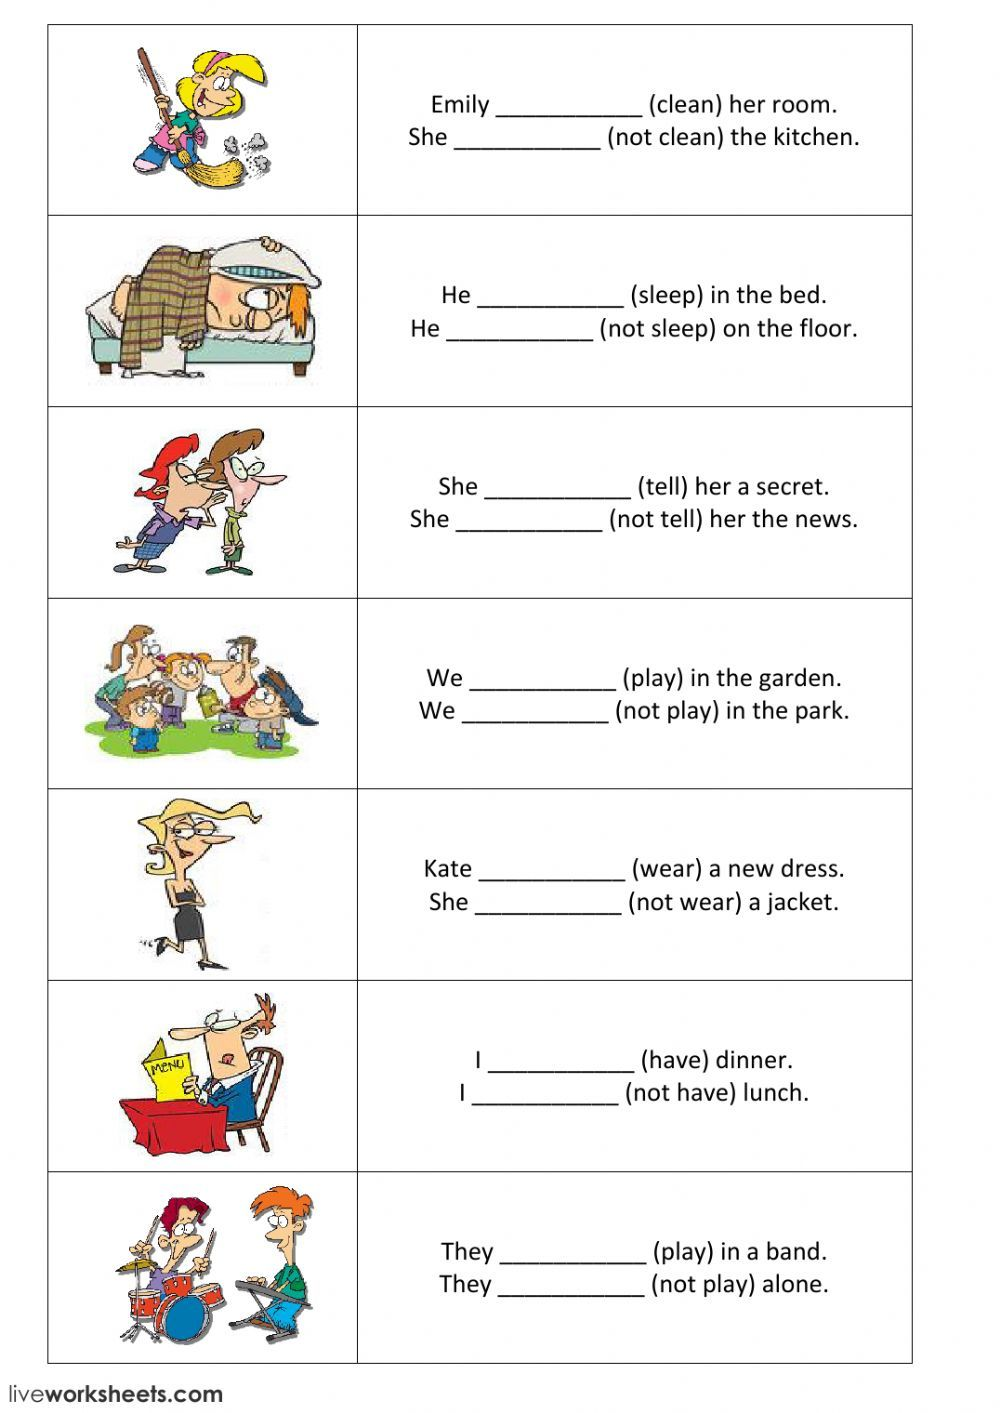 Present Simple Interactive And Downloadable Worksheet You Can Do The Exercises Online Or Downl Simple Present Tense Worksheets Grammar For Kids Verbs For Kids [ 1413 x 1000 Pixel ]